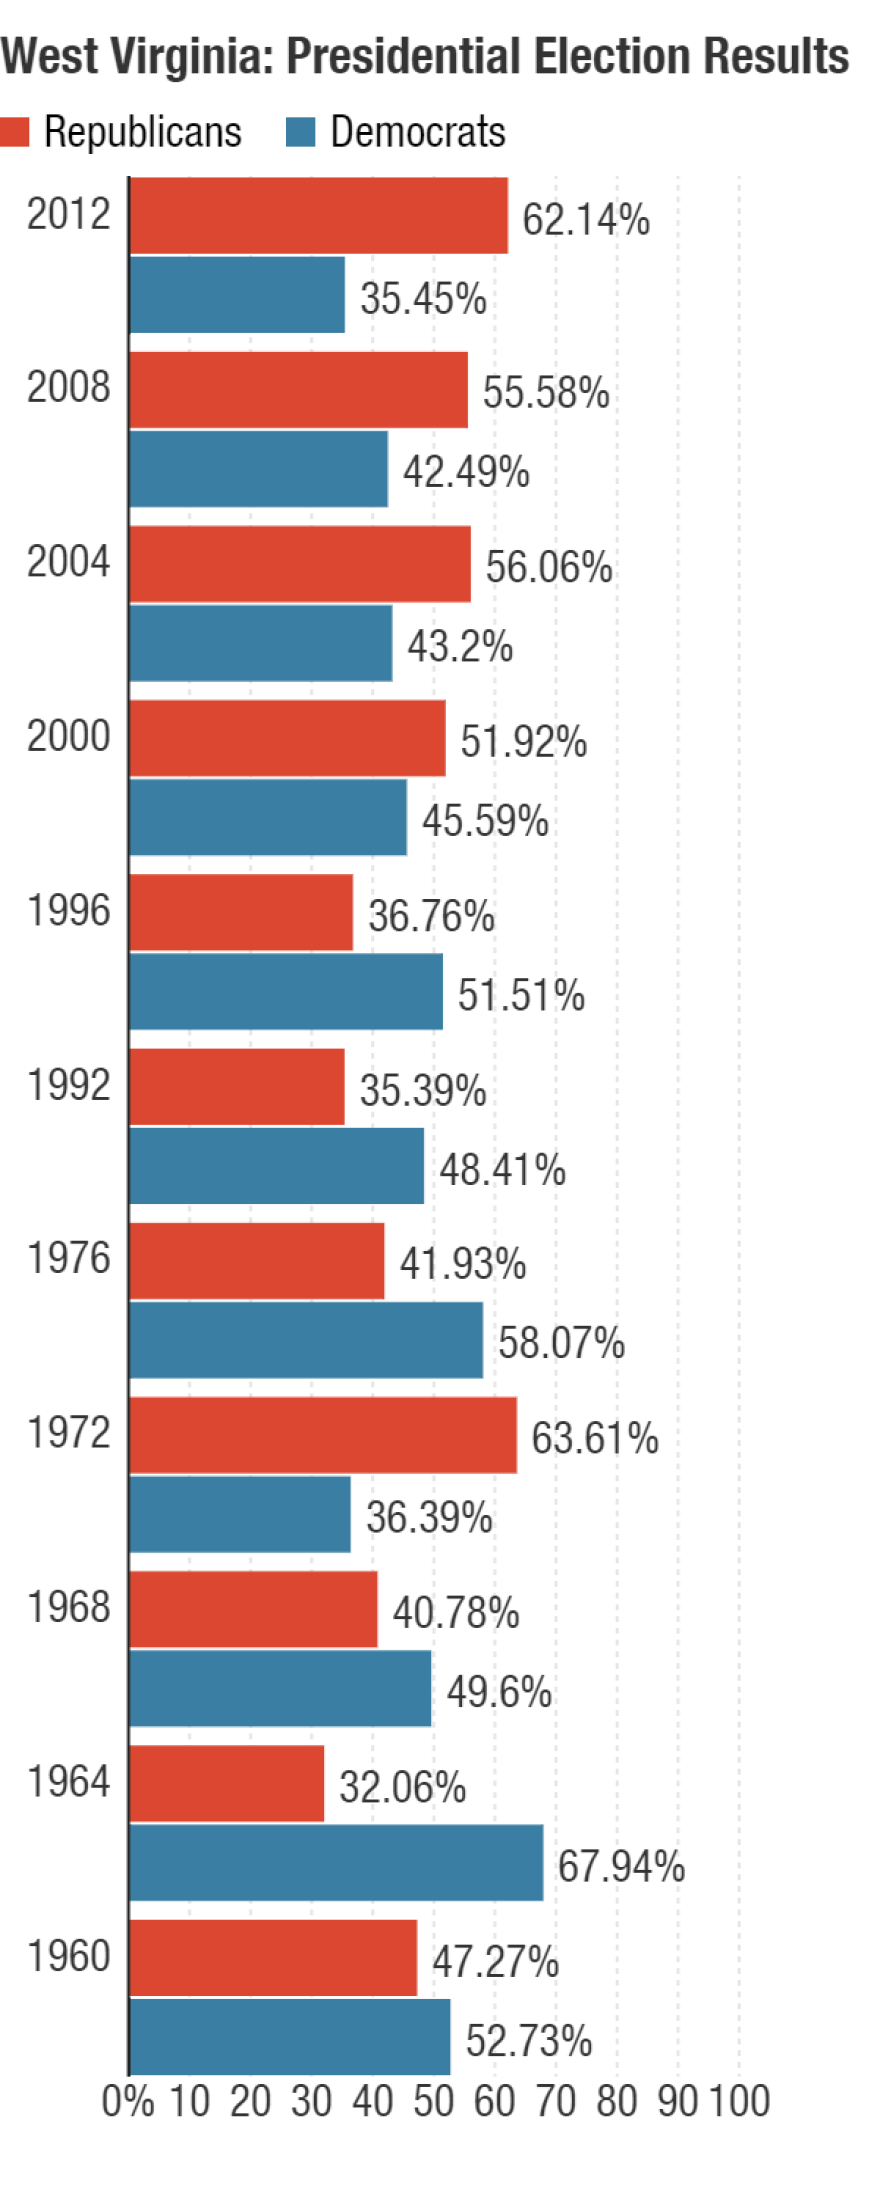 In the past few presidential elections, Republicans have won the popular vote over Democrats in West Virginia.